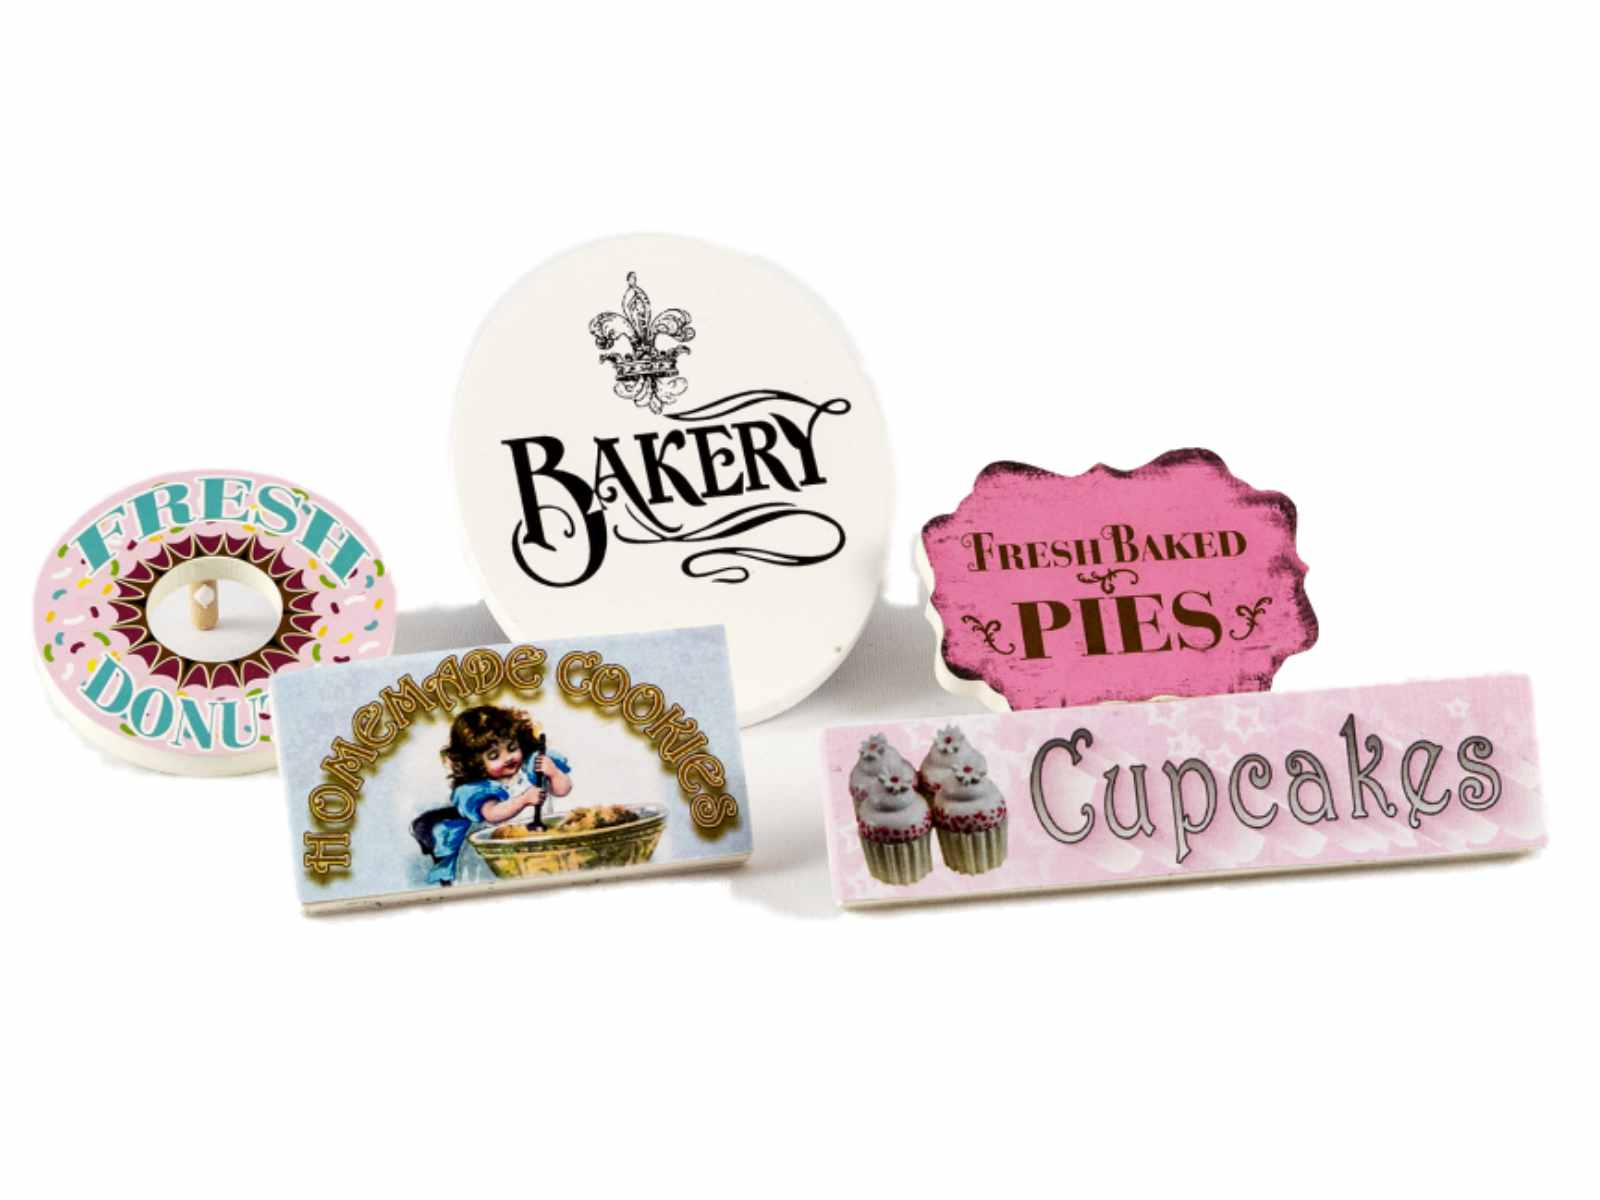 The Queen's Treasures American Bakery Shoppe Signs used with Interchangeable Shoppe Counter. 5 Bake Shop Signs. Accessories for 18 inch Girl Dolls PartNumber: 05258715000P KsnValue: 8398352 MfgPartNumber: AGBKSIGN